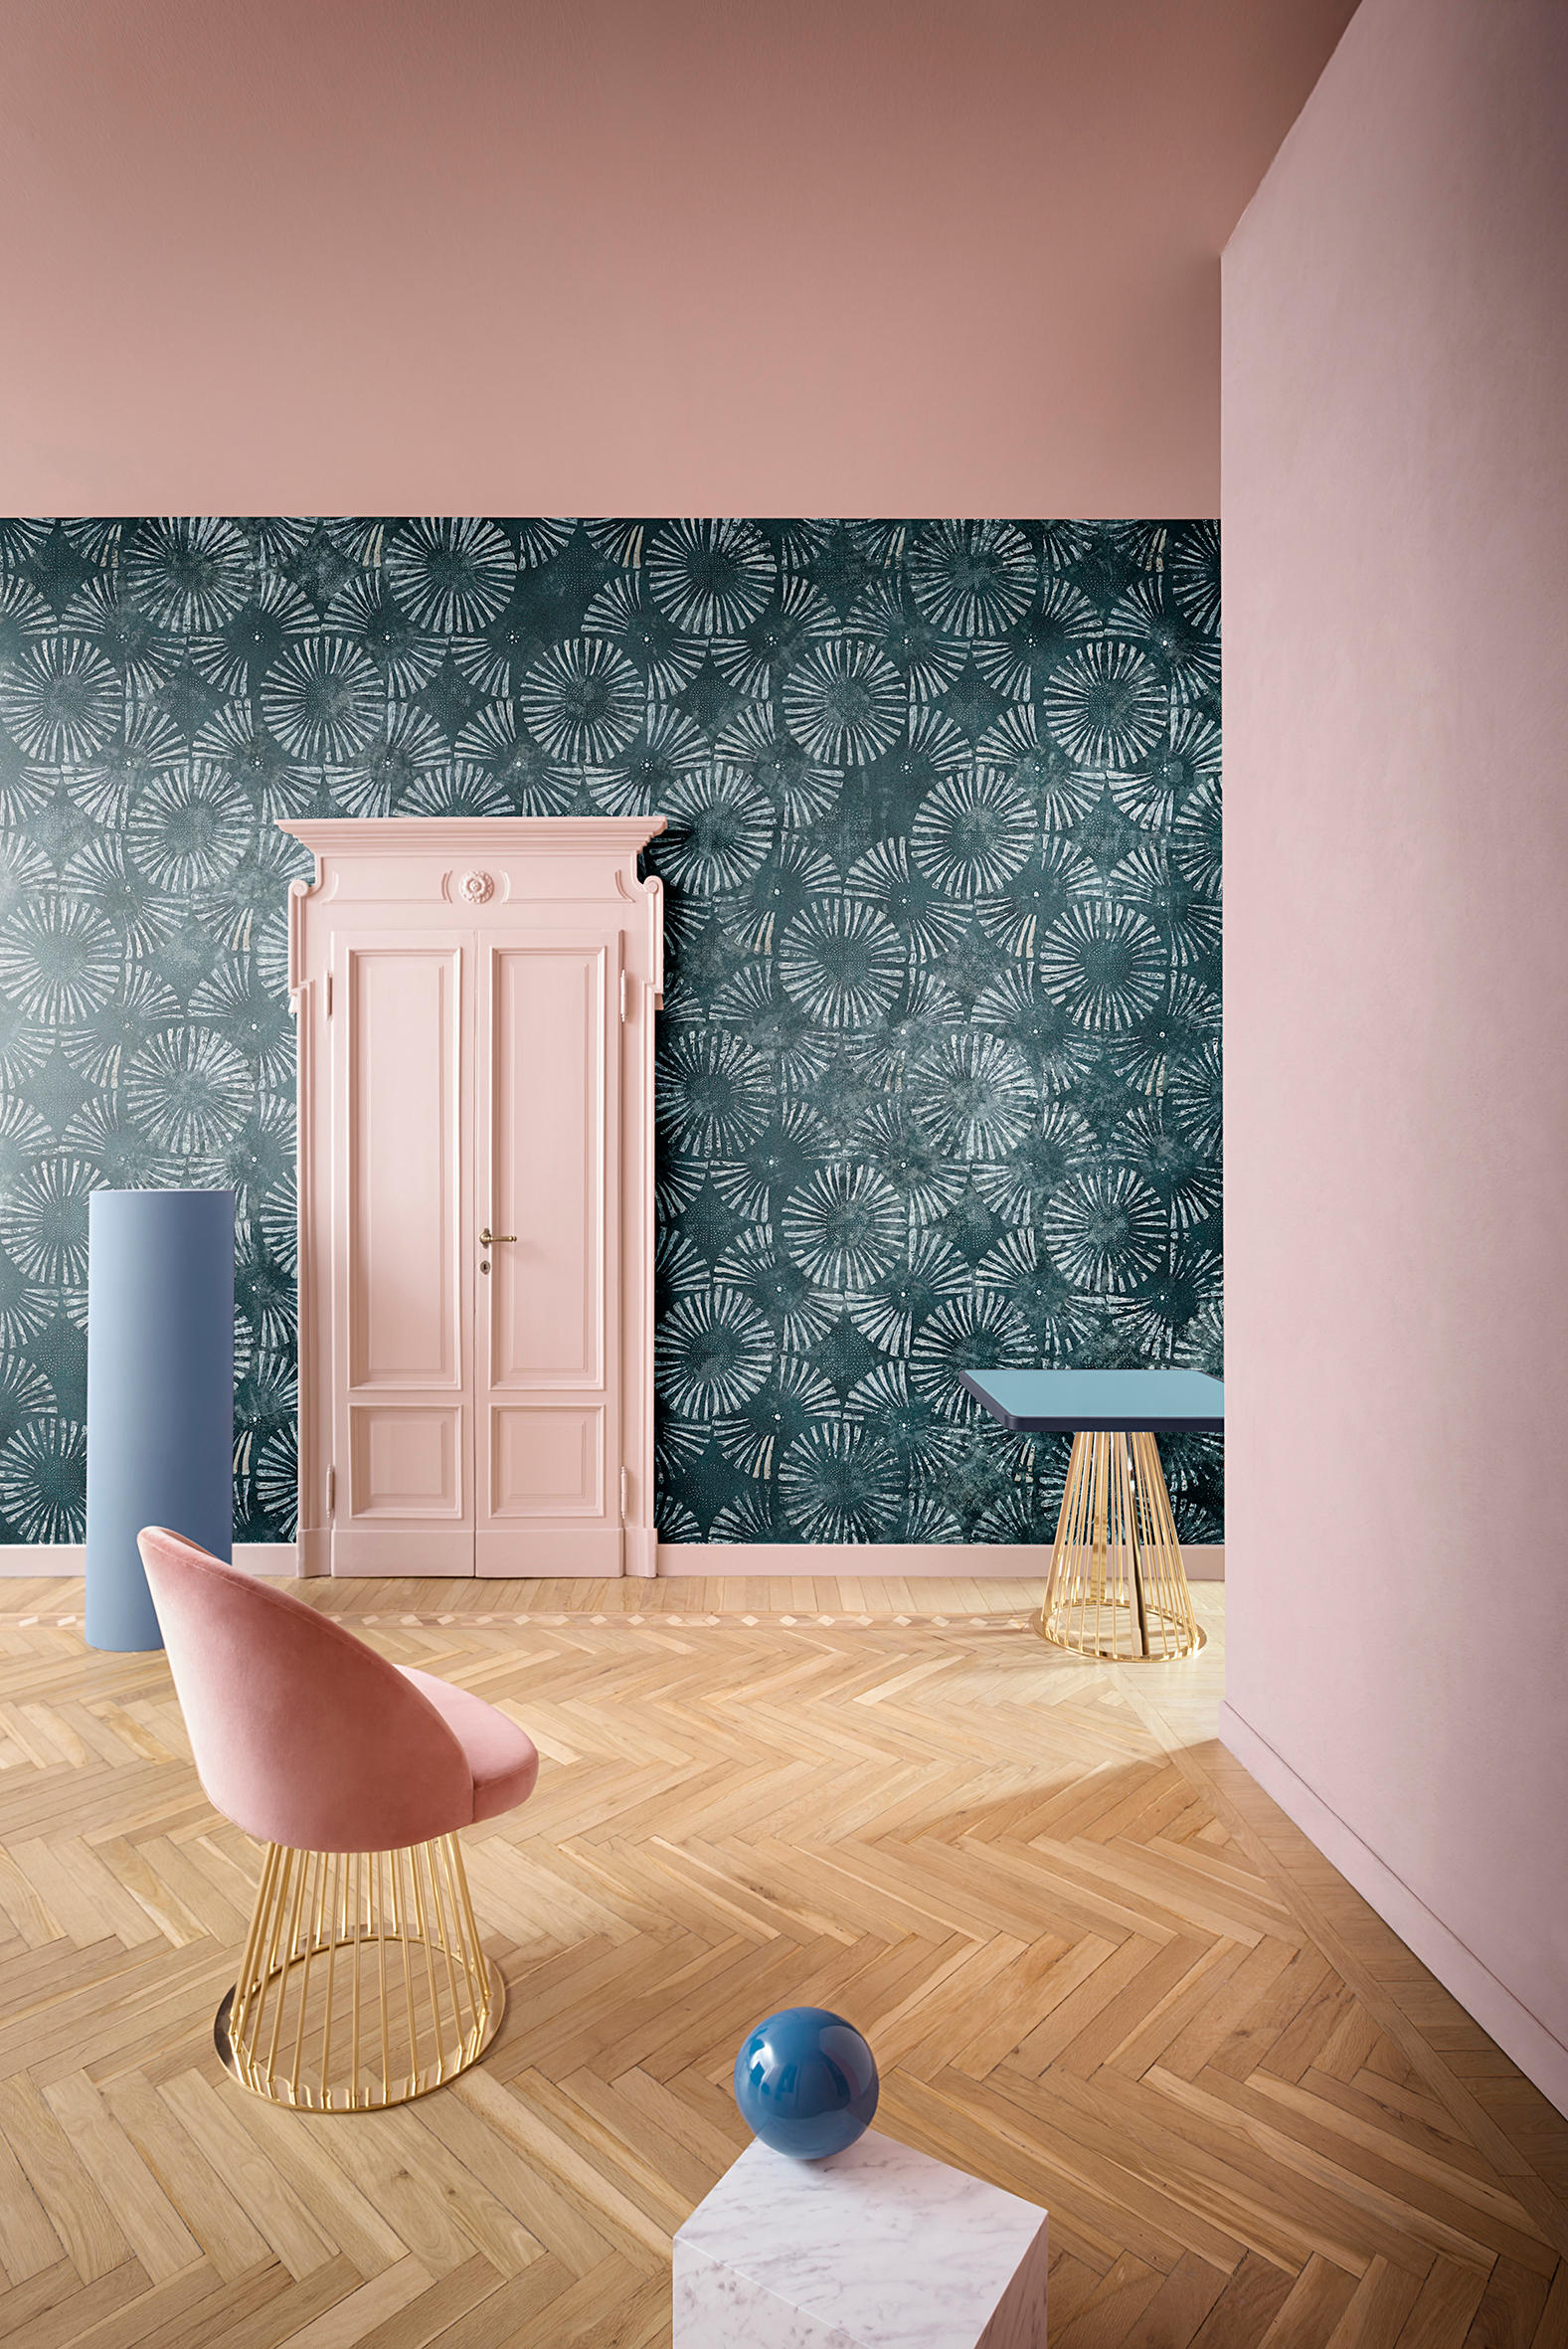 9 Wallpaper Trends to Refresh your Home for Summer wallpaper trends 8 Wallpaper Trends to Refresh your Home for Summer 9 Wallpaper Trends to Refresh your Home for Summer5